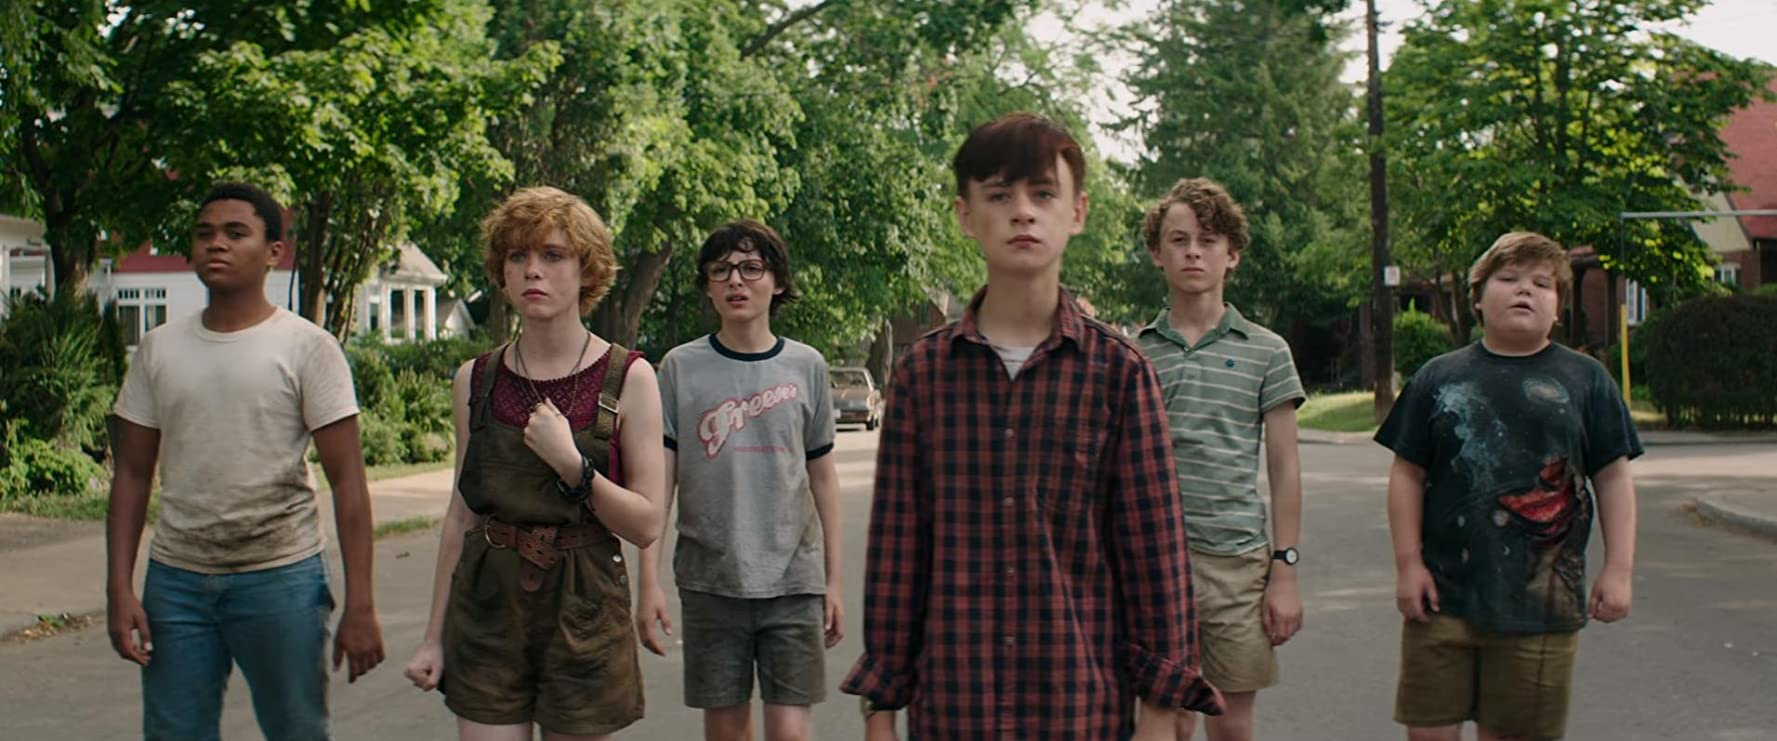 Wyatt Oleff, Jeremy Ray Taylor, Jaeden Martell, Finn Wolfhard, Sophia Lillis, and Chosen Jacobs in It (2017)